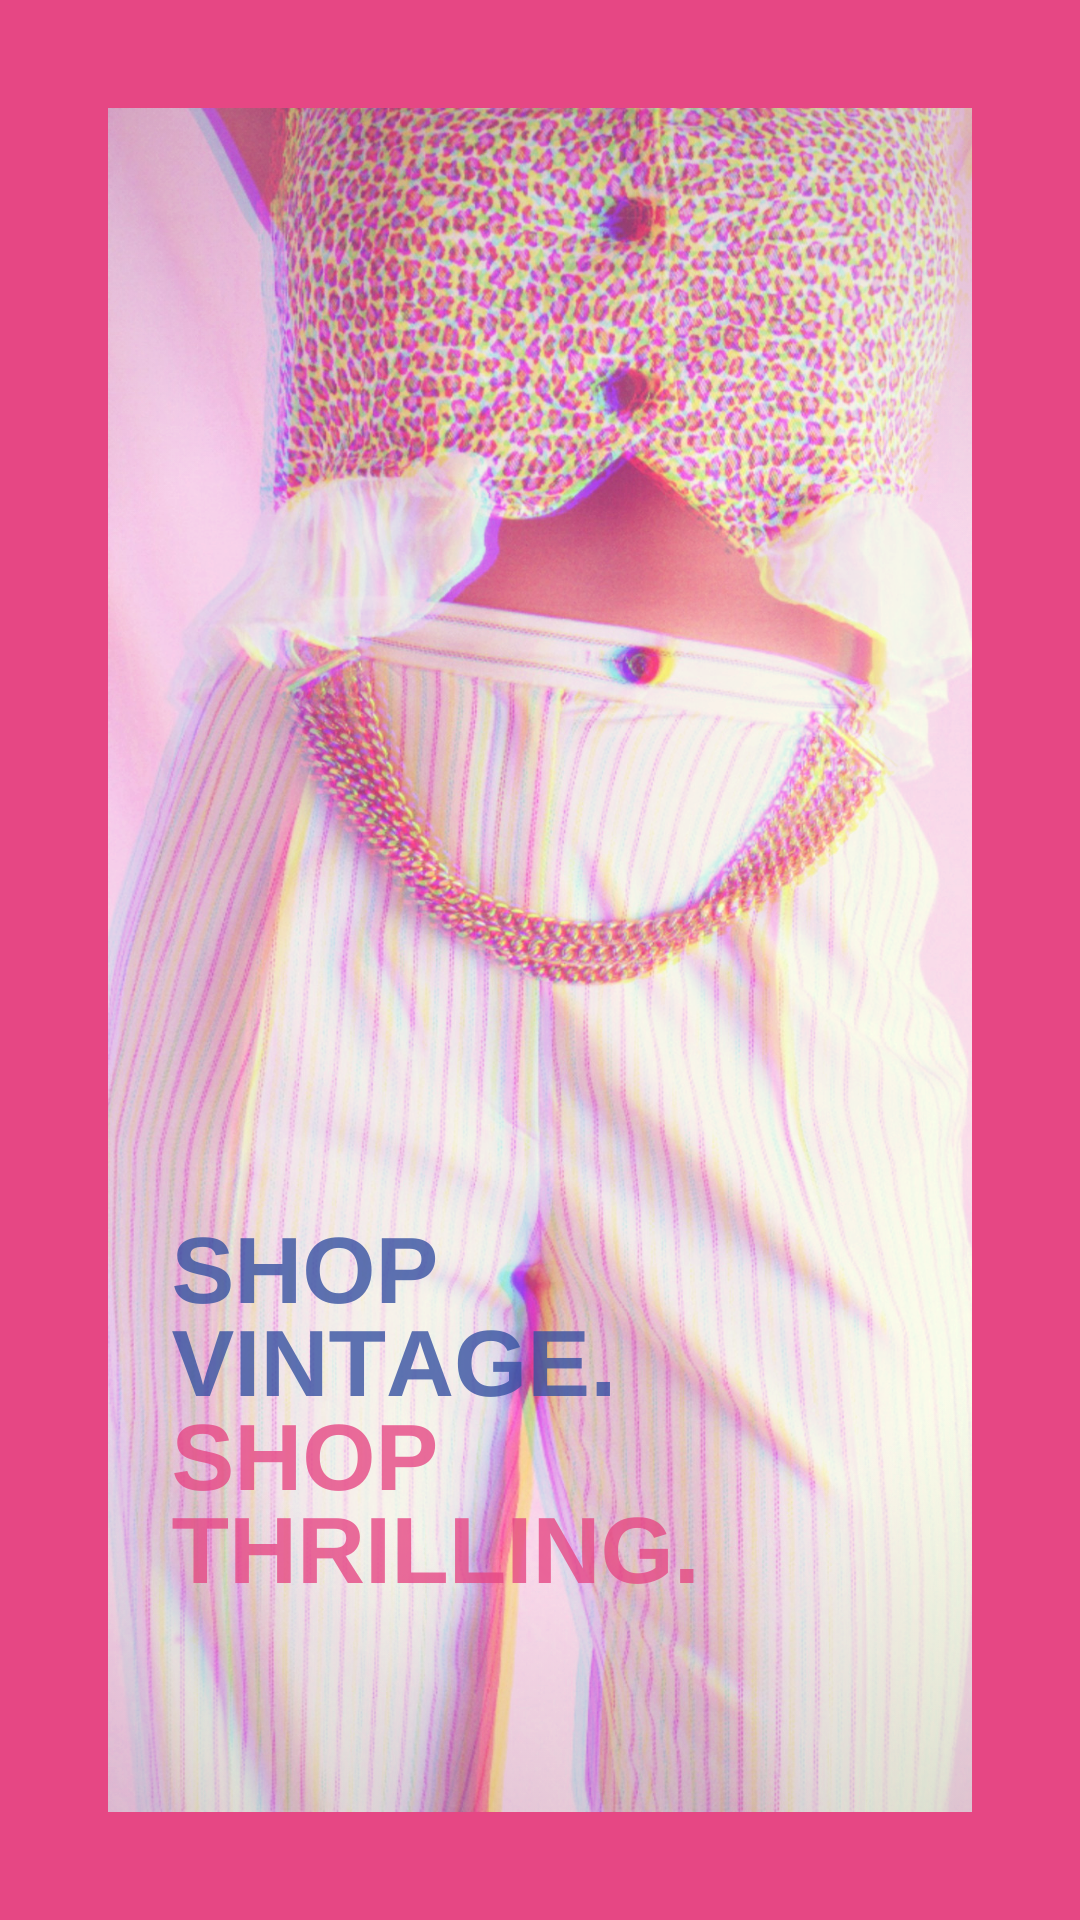 Vintage Shopping Just Got Easier In 2020 Vintage Outfits Aesthetic Clothes Retro Outfits